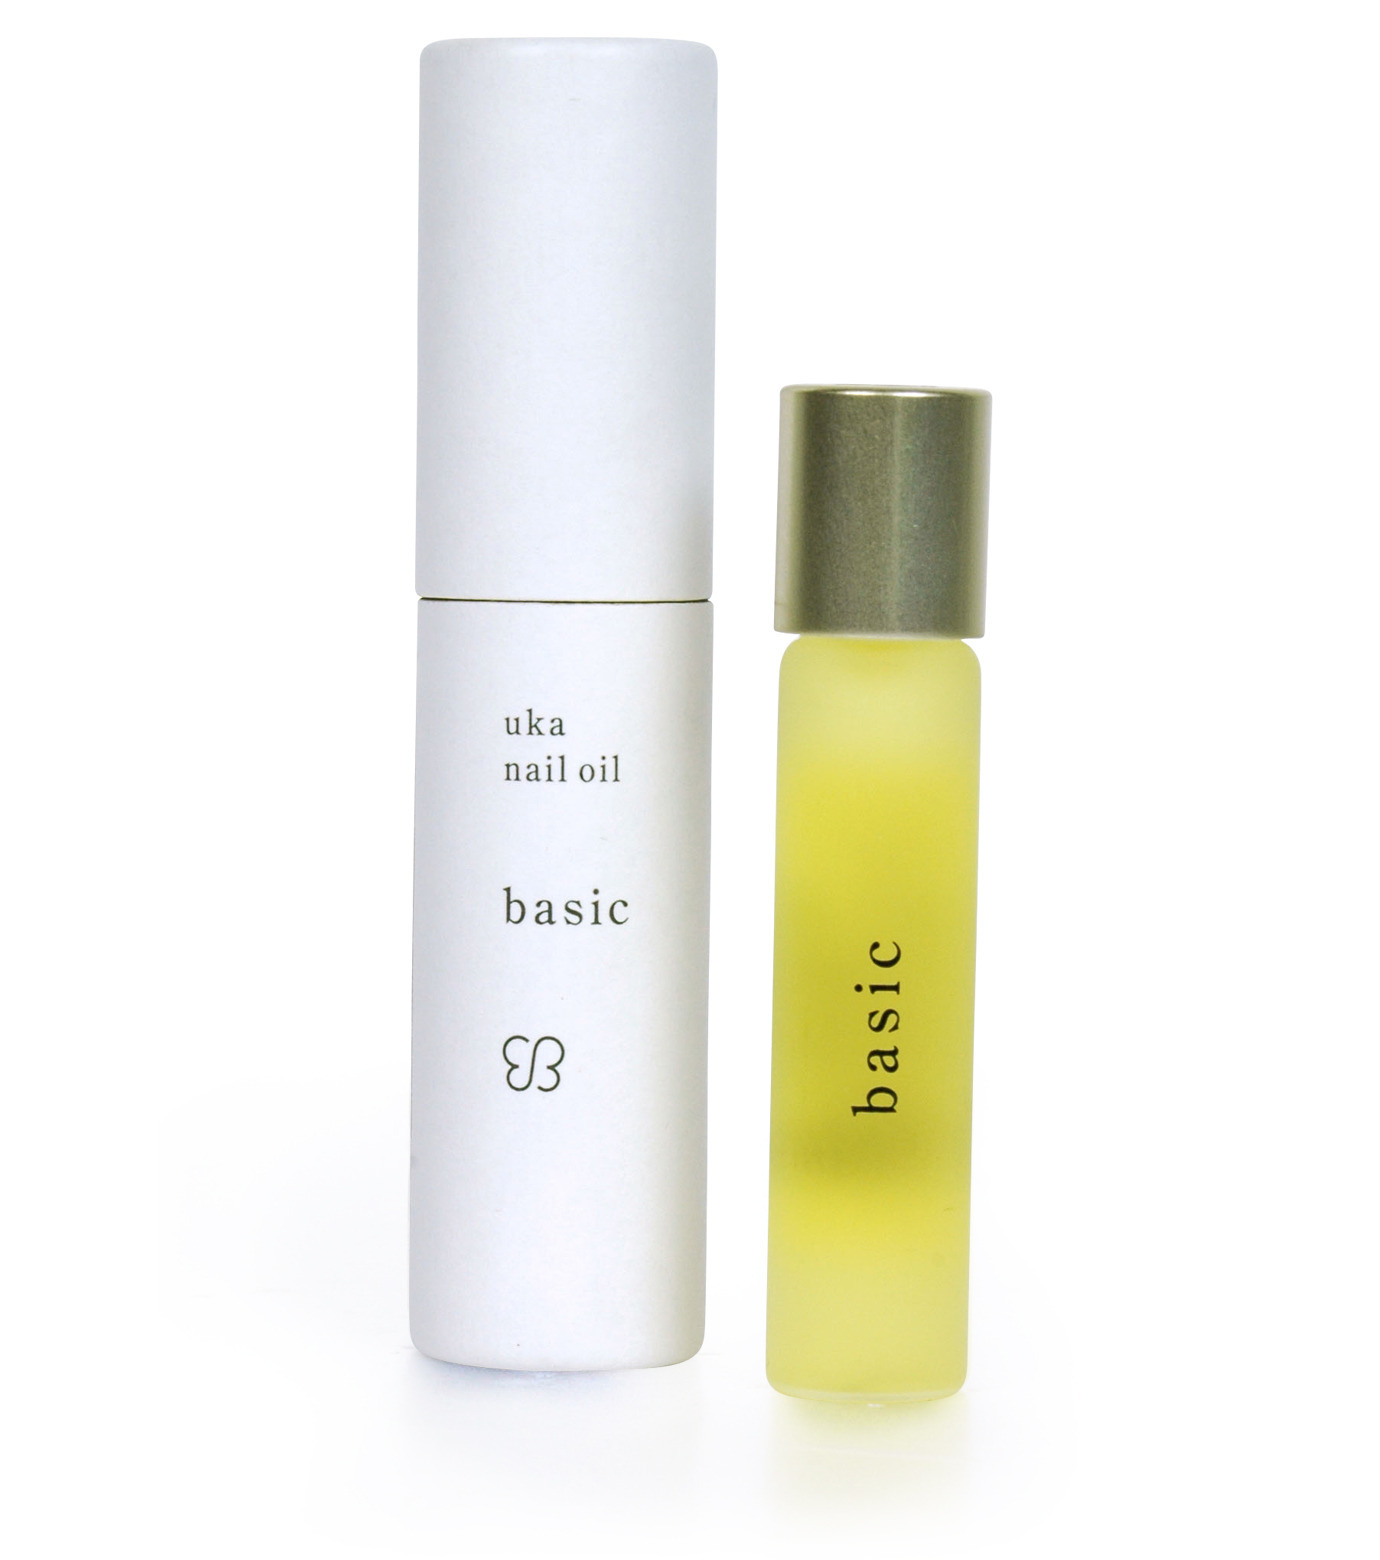 uka(ウカ)のnail oil basic-YELLOW(BATH-BODY/BATH / BODY)-ukabasic 拡大詳細画像1